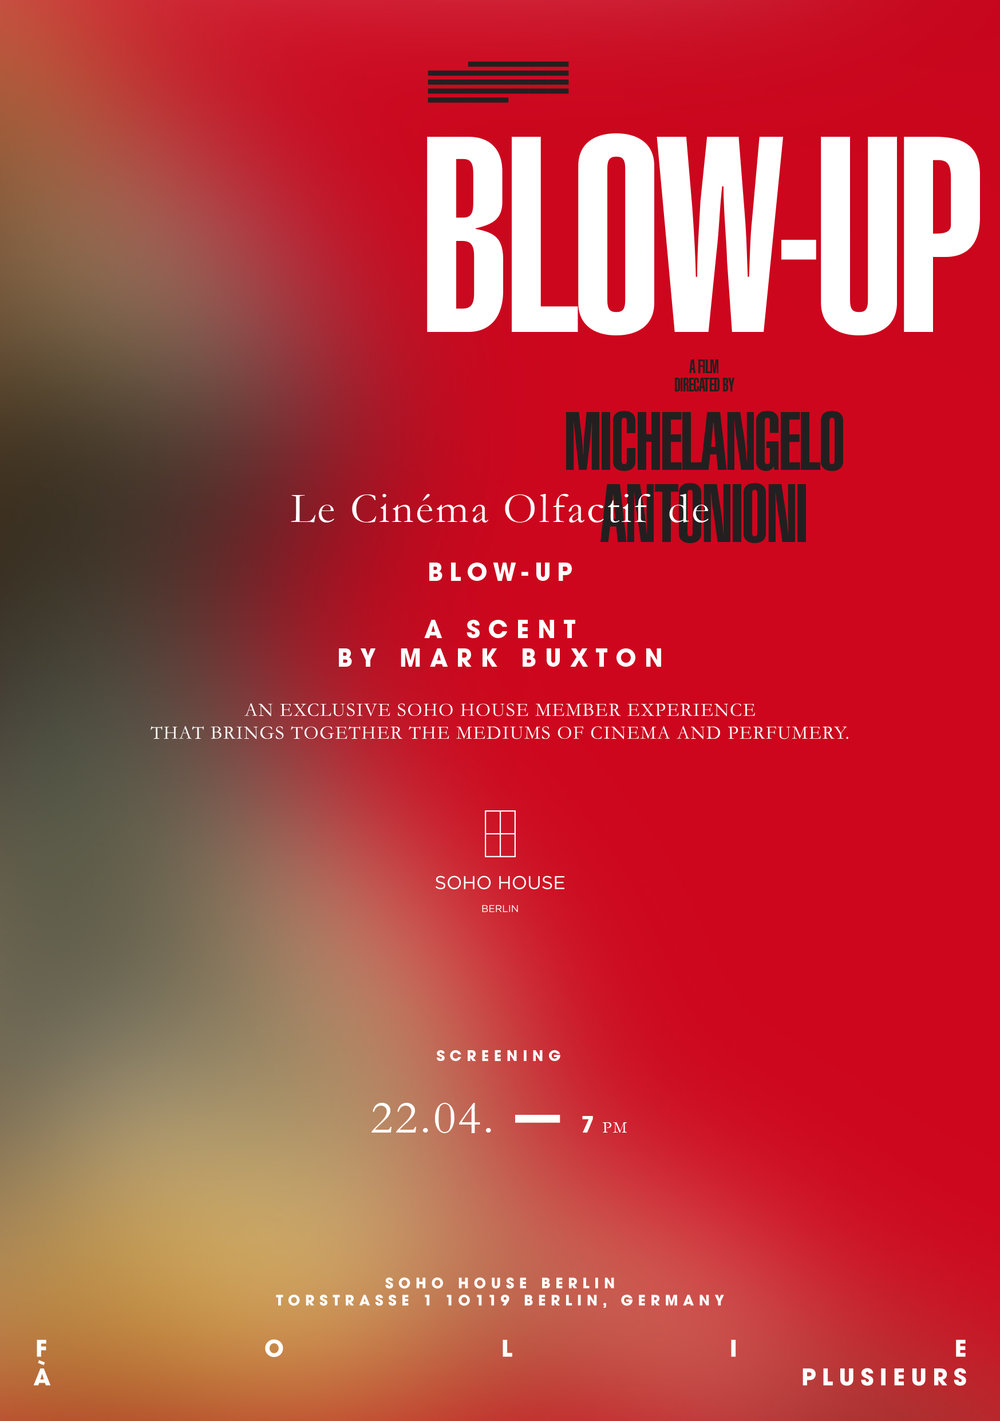 Blow-Up-Fragrance_Folie-A-Plusieurs.jpg